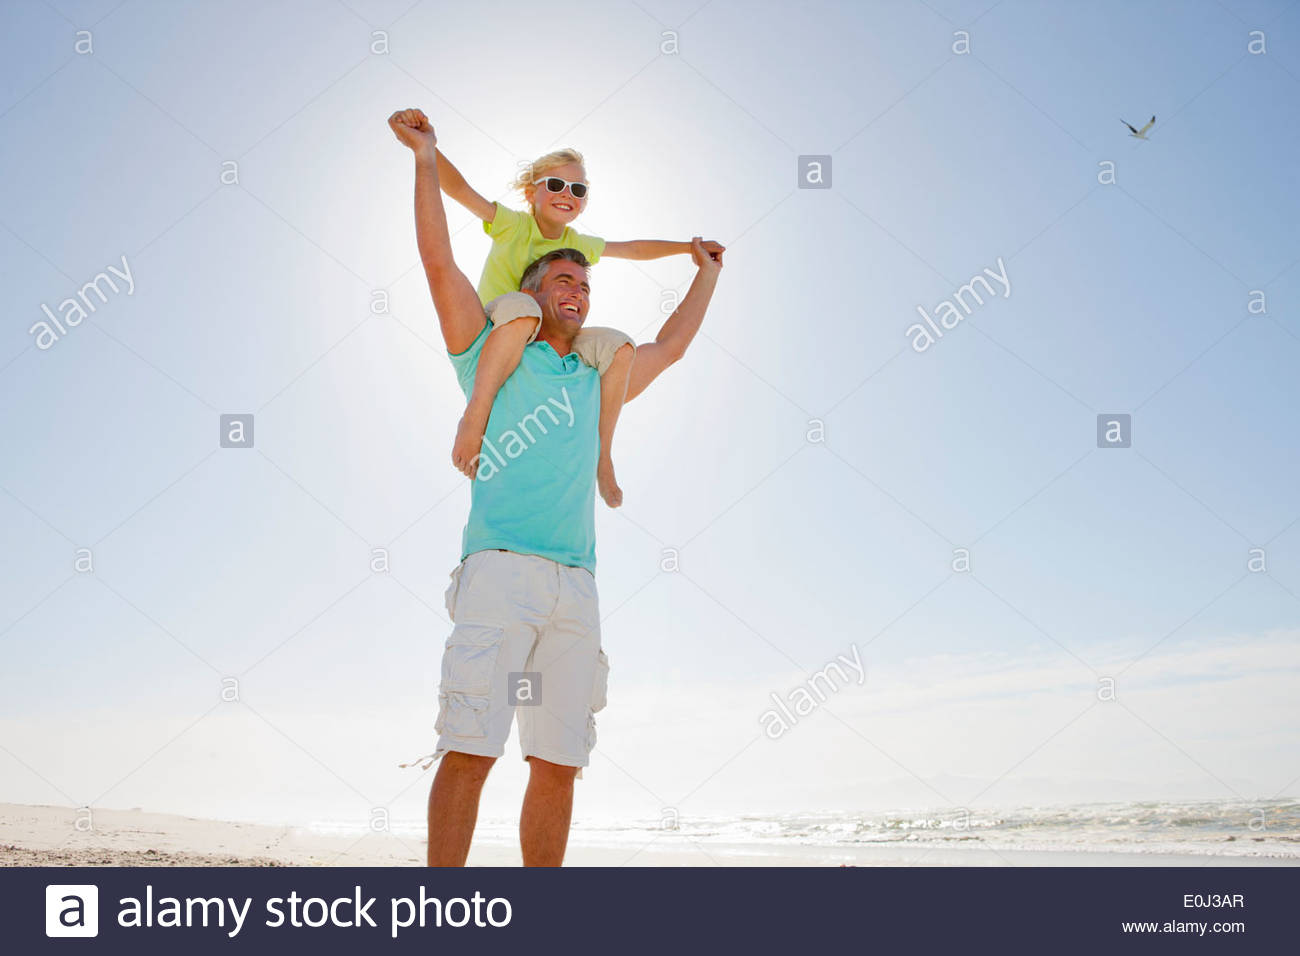 Father carrying son on shoulders on sunny beach - Stock Image